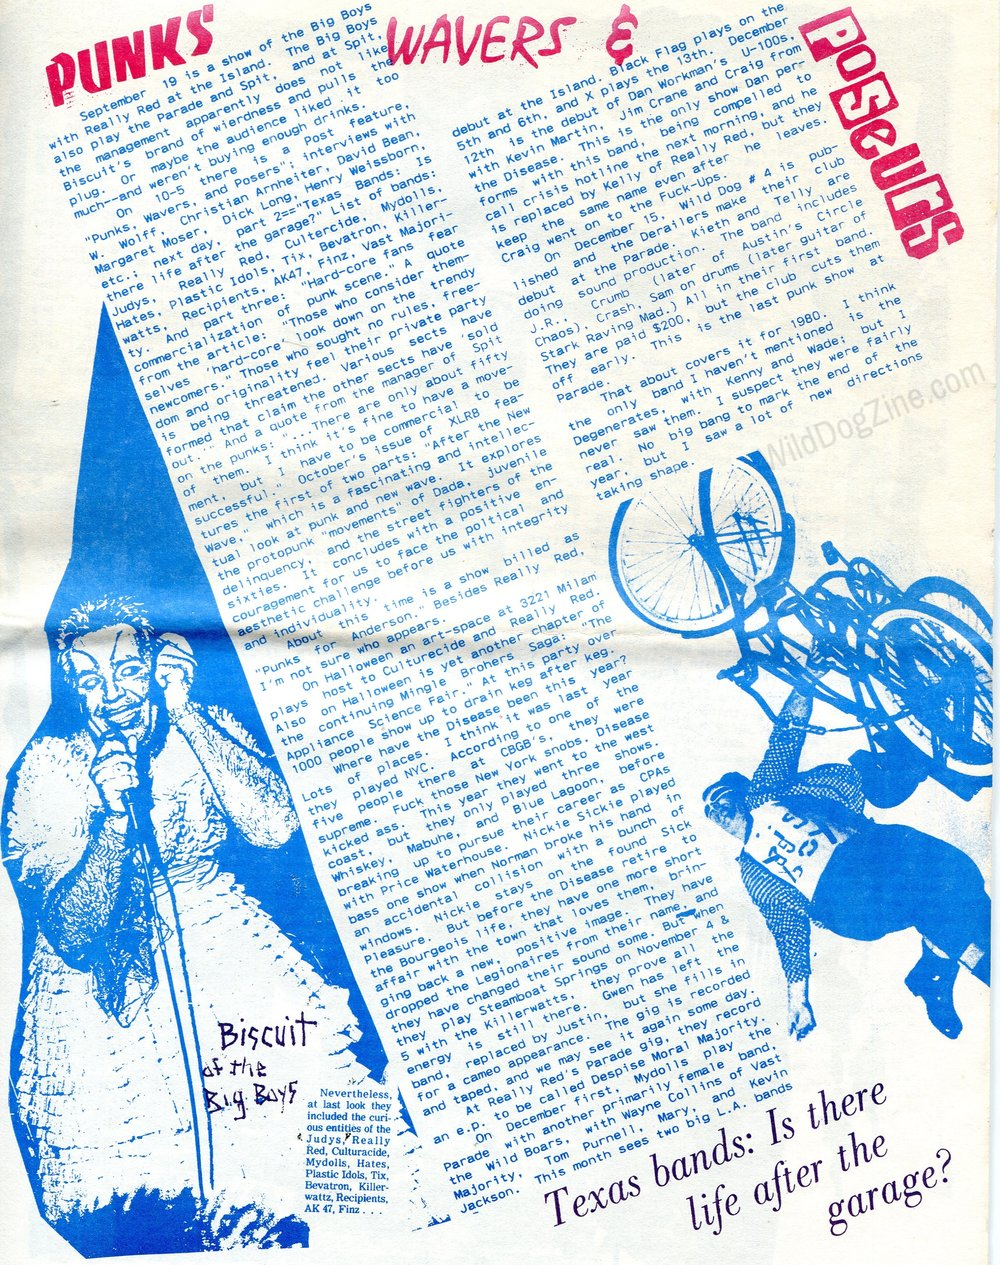 ORIGINAL ZINE IMAGES COURTESY OF   WILD DOG ARCHIVES  .